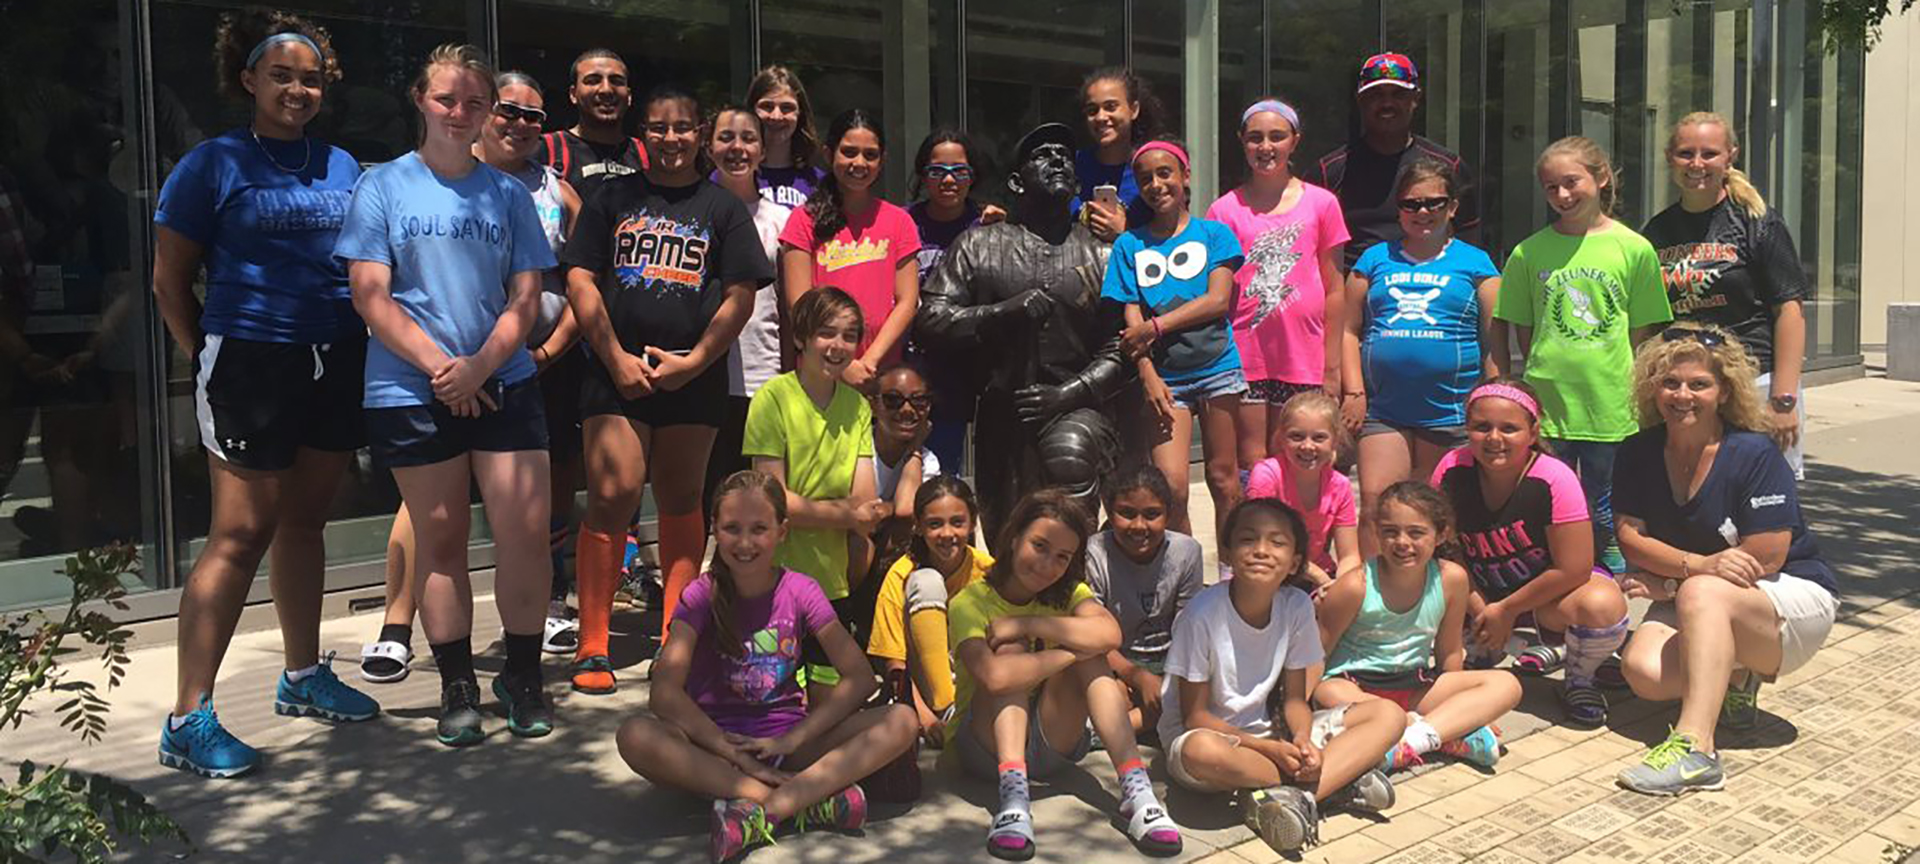 A group of children pose with the statue of Yogi Berra outside of his Museum